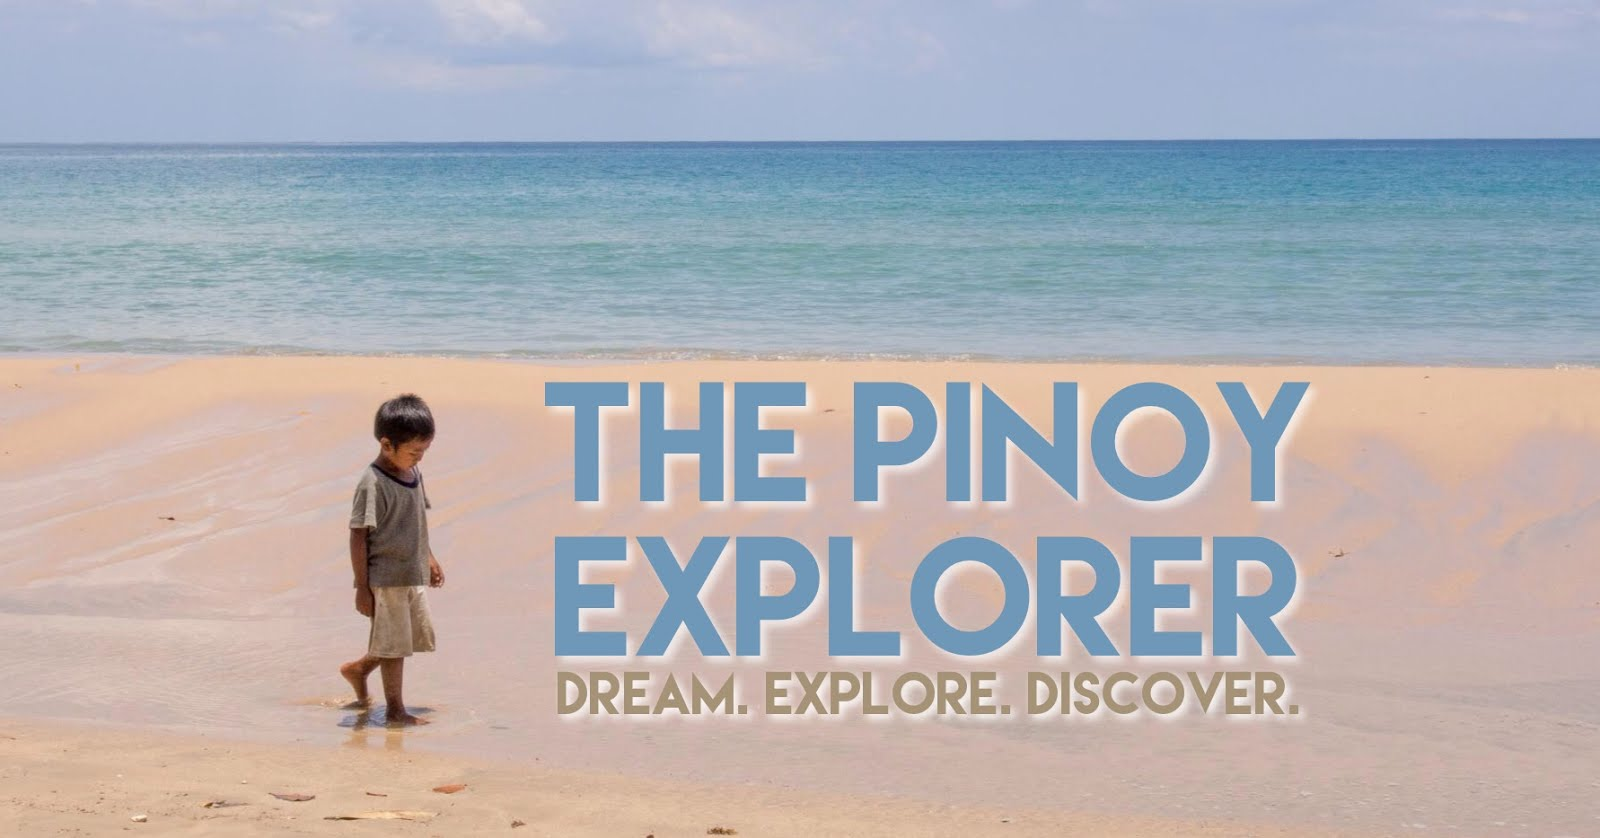 THE PINOY EXPLORER